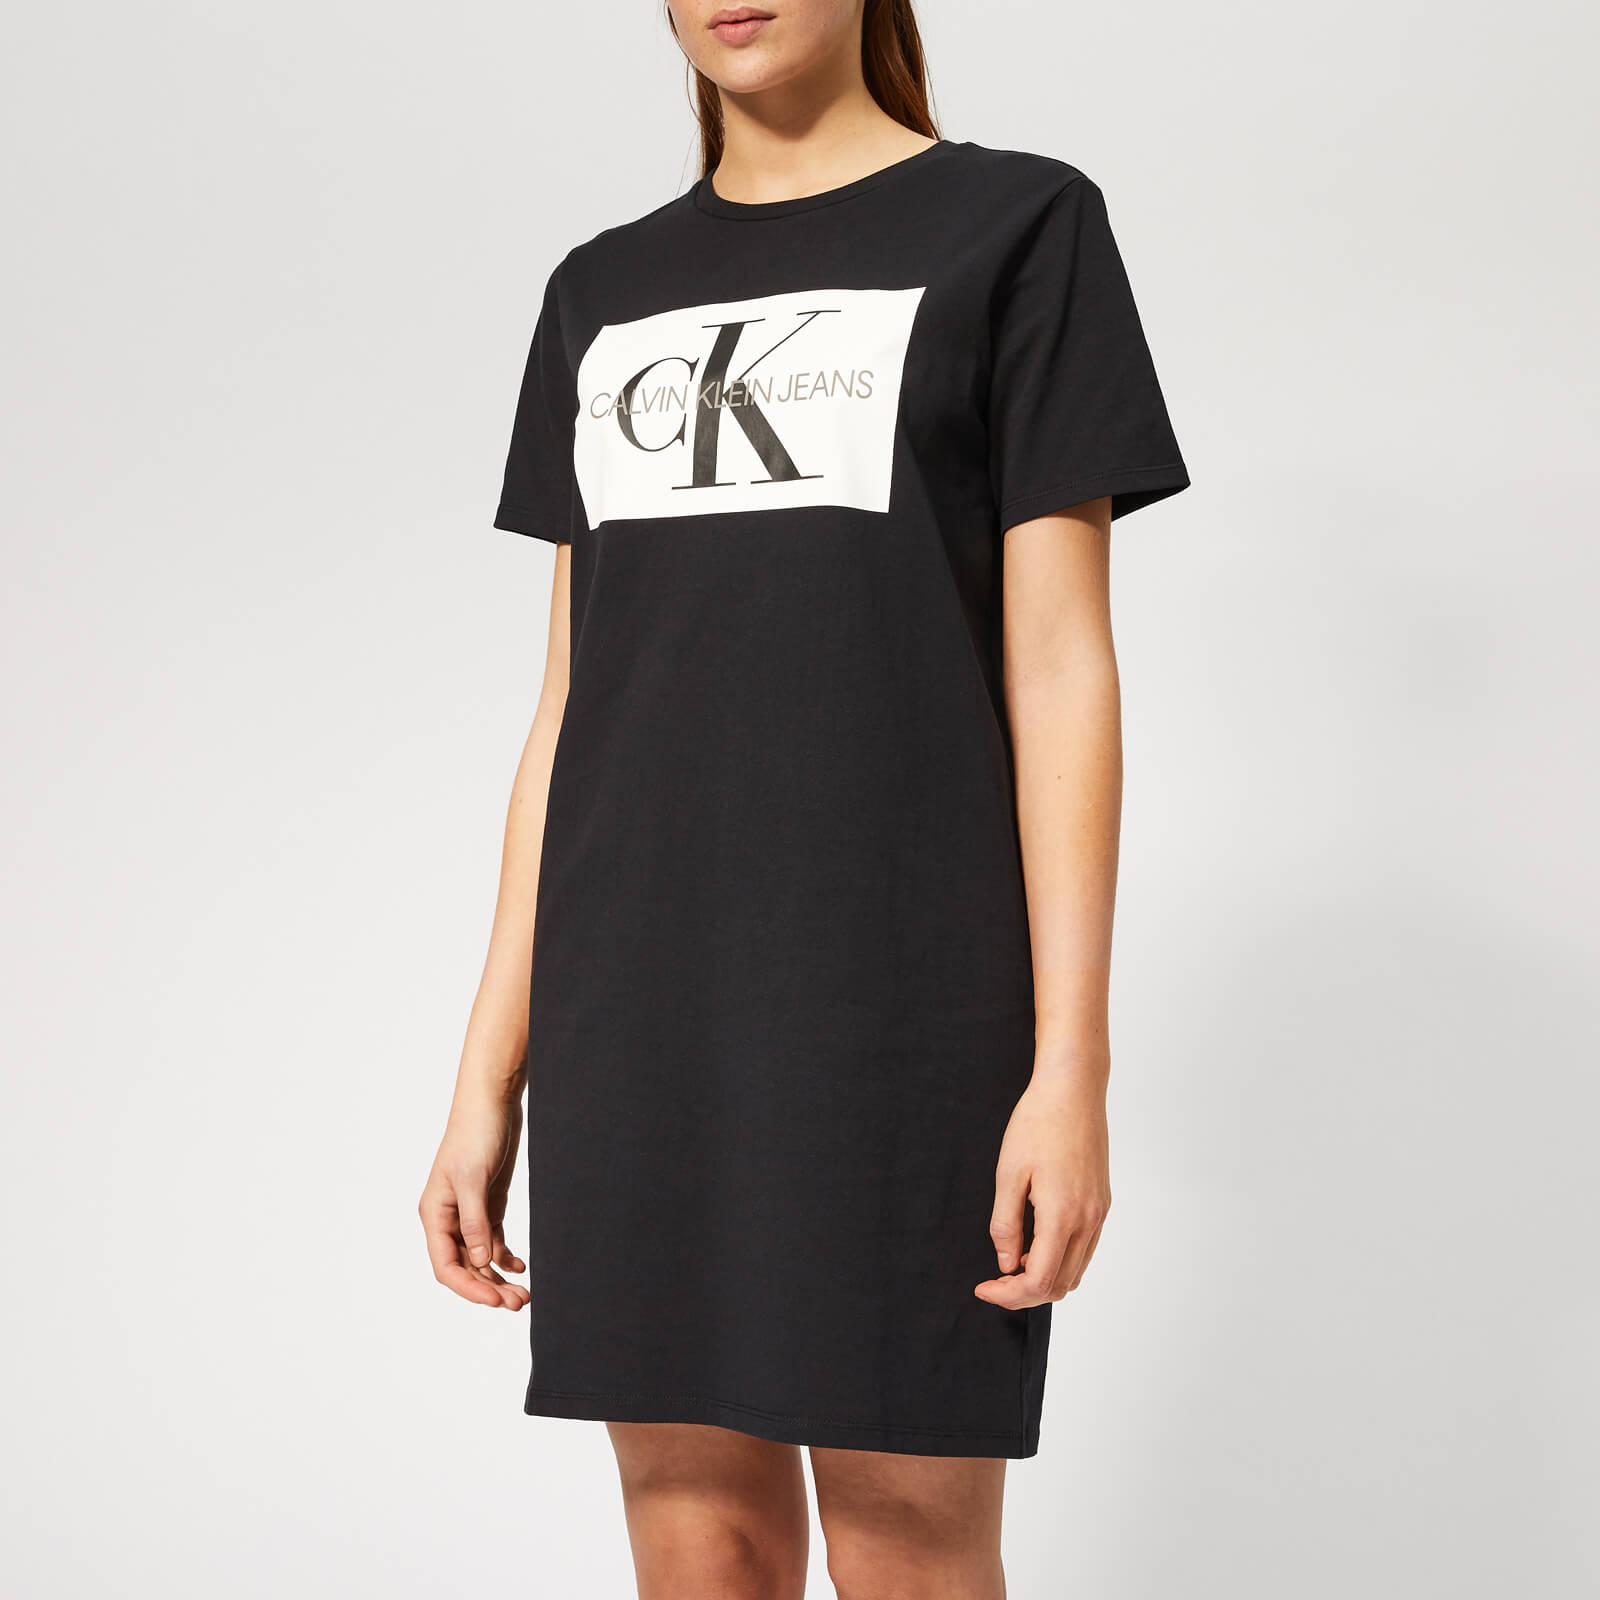 b8c8bcfe840 Calvin Klein Jeans Women s Iconic Monogram Box T-Shirt Dress - CK Black  Womens Clothing